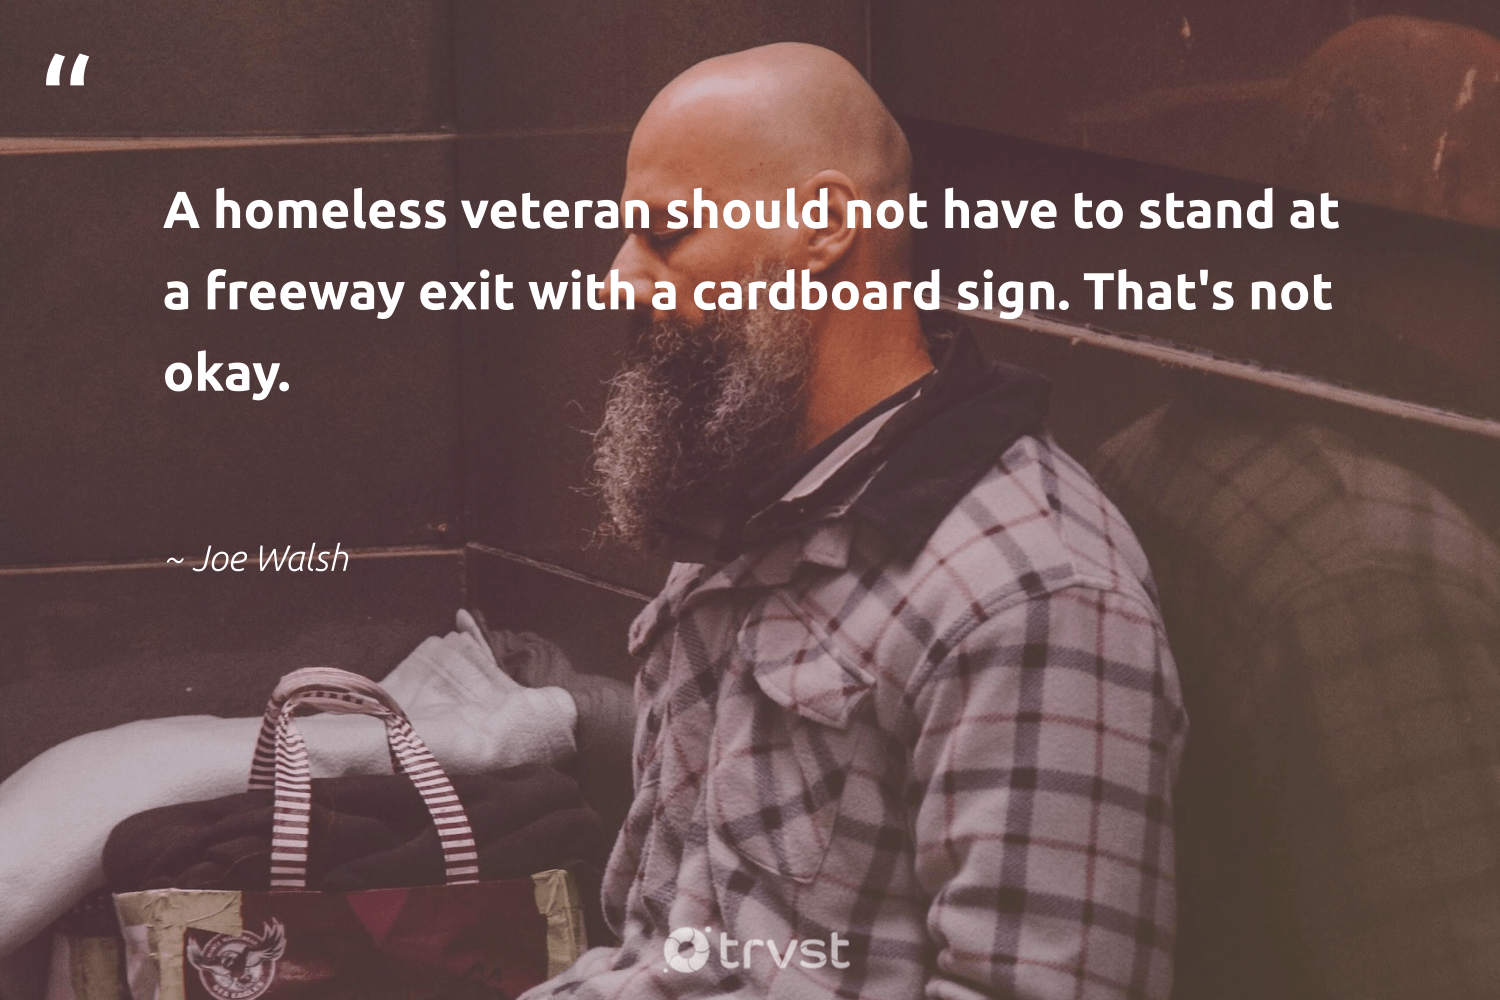 """""""A homeless veteran should not have to stand at a freeway exit with a cardboard sign. That's not okay.""""  - Joe Walsh #trvst #quotes #homelessness #homeless #equalrights #weareallone #planetearthfirst #equalopportunity #sustainablefutures #ecoconscious #makeadifference #inclusion"""